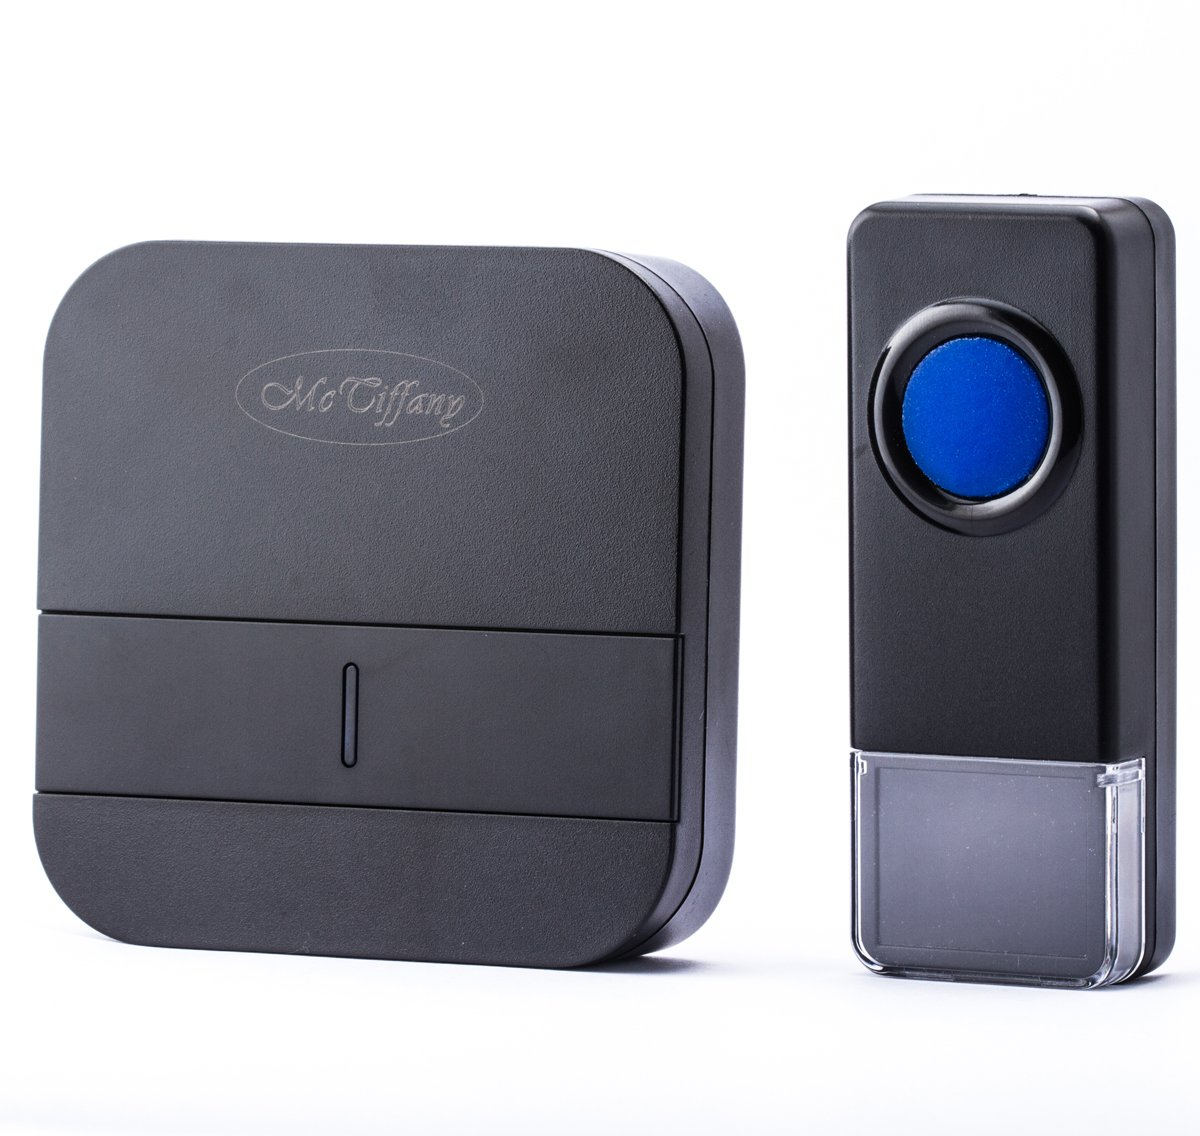 Wireless Doorbell Operating at over 500-feet Range with Over 50 Chimes, No Batteries Required for Receiver, (Black)